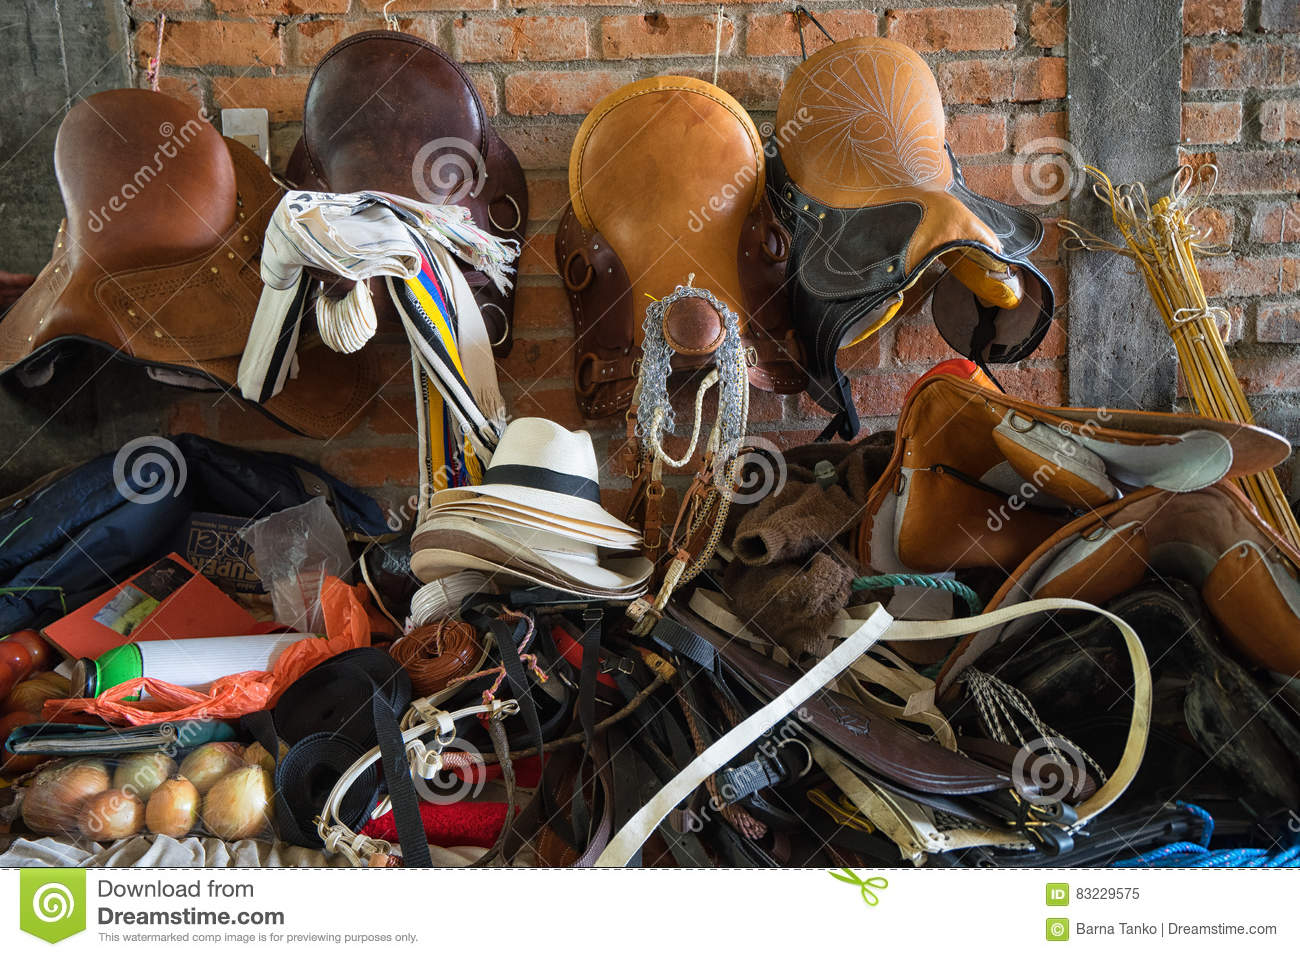 Vendor selling saddles in Colombia